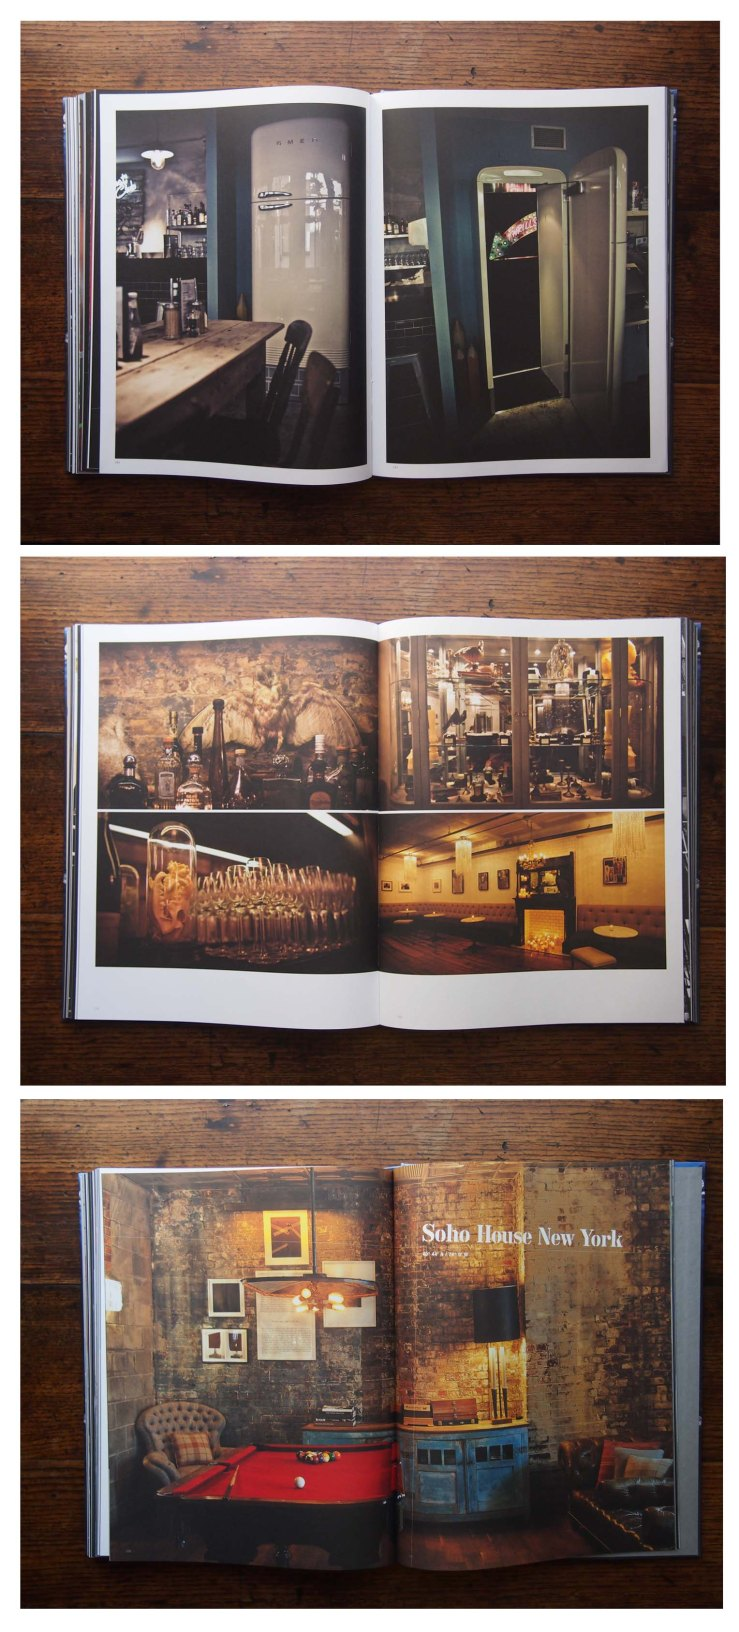 pages2